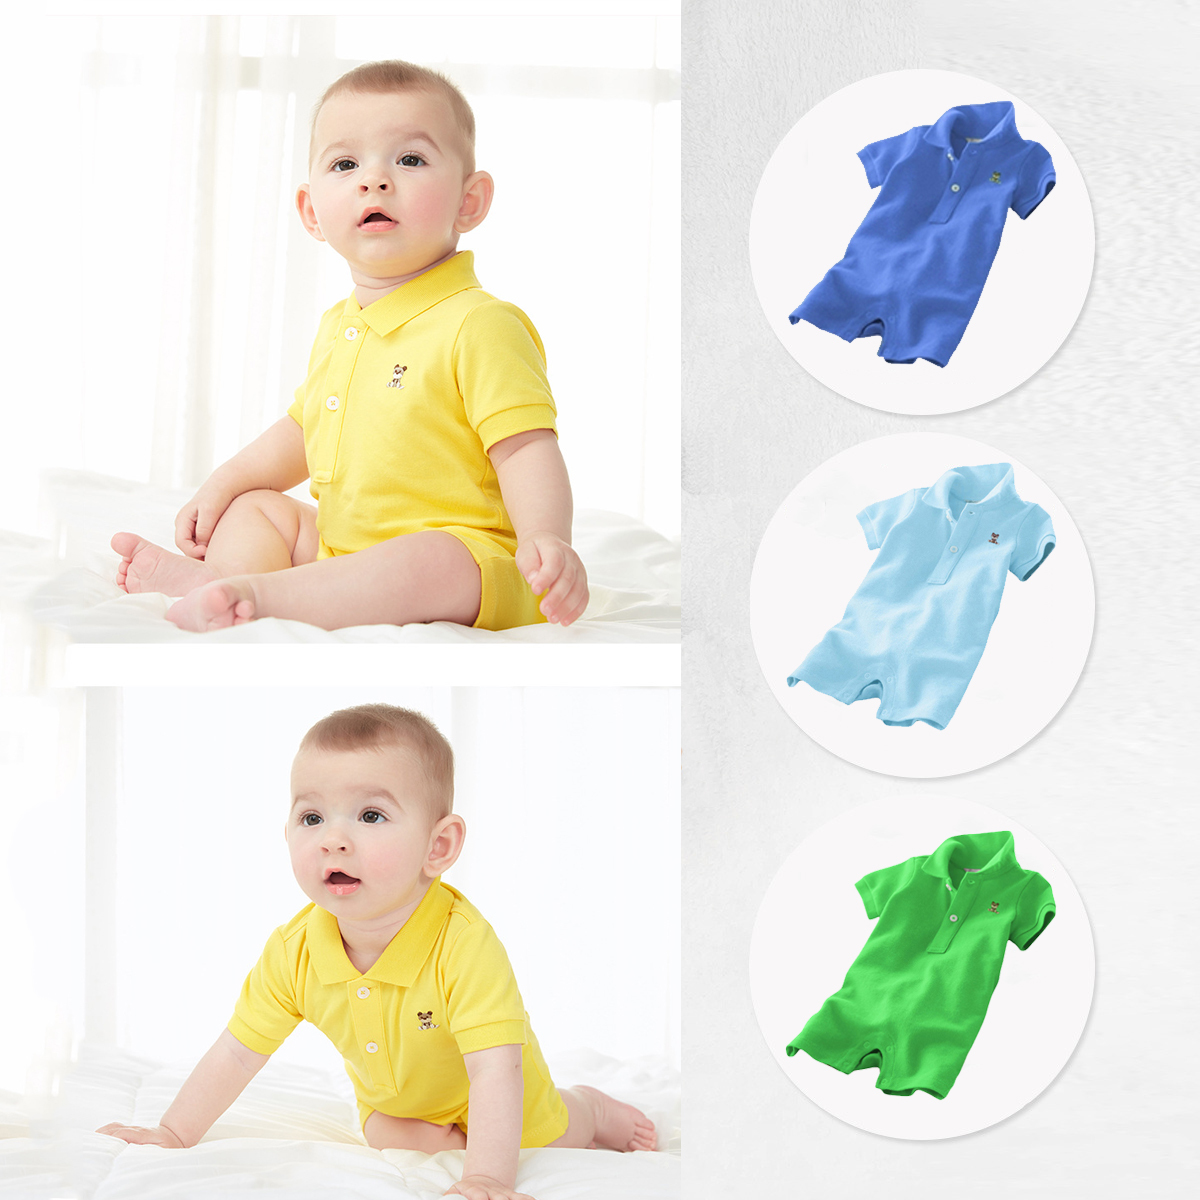 2019 Summer Polo Short Sleeved bodysuit one-piece Romper Jumpsuit Newborn Baby girl Cotton Clothes Infant Costume nba jersey image